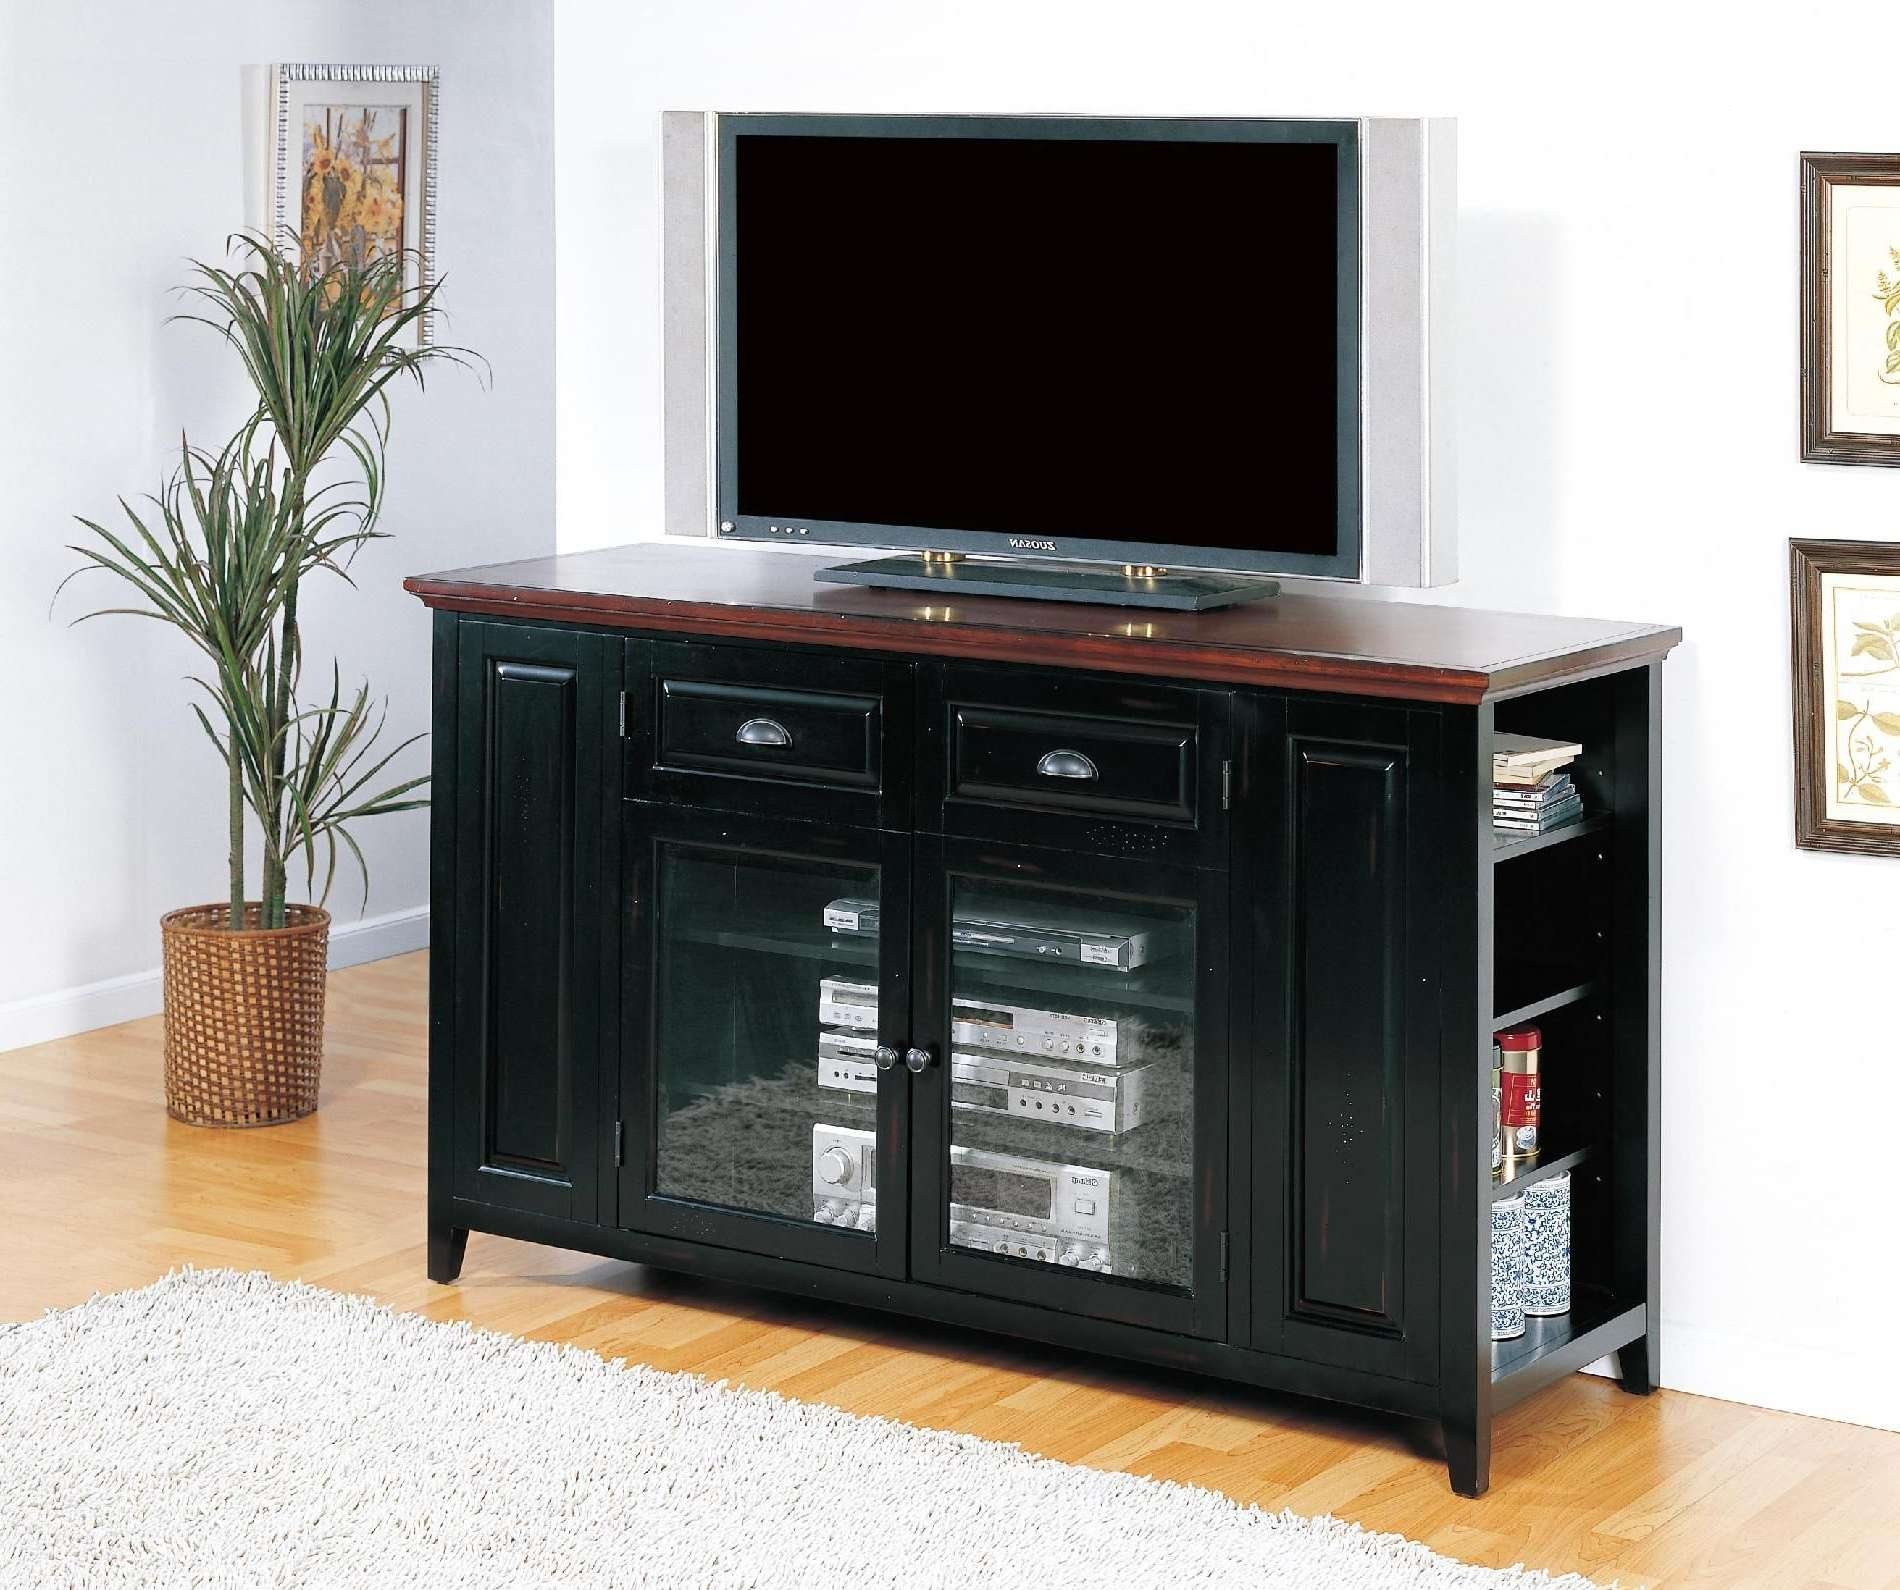 Retro Black Oak Wood Tv Stand With Glass Doors Of Tall Tv Stands Regarding Wood Tv Stands With Glass (View 14 of 15)